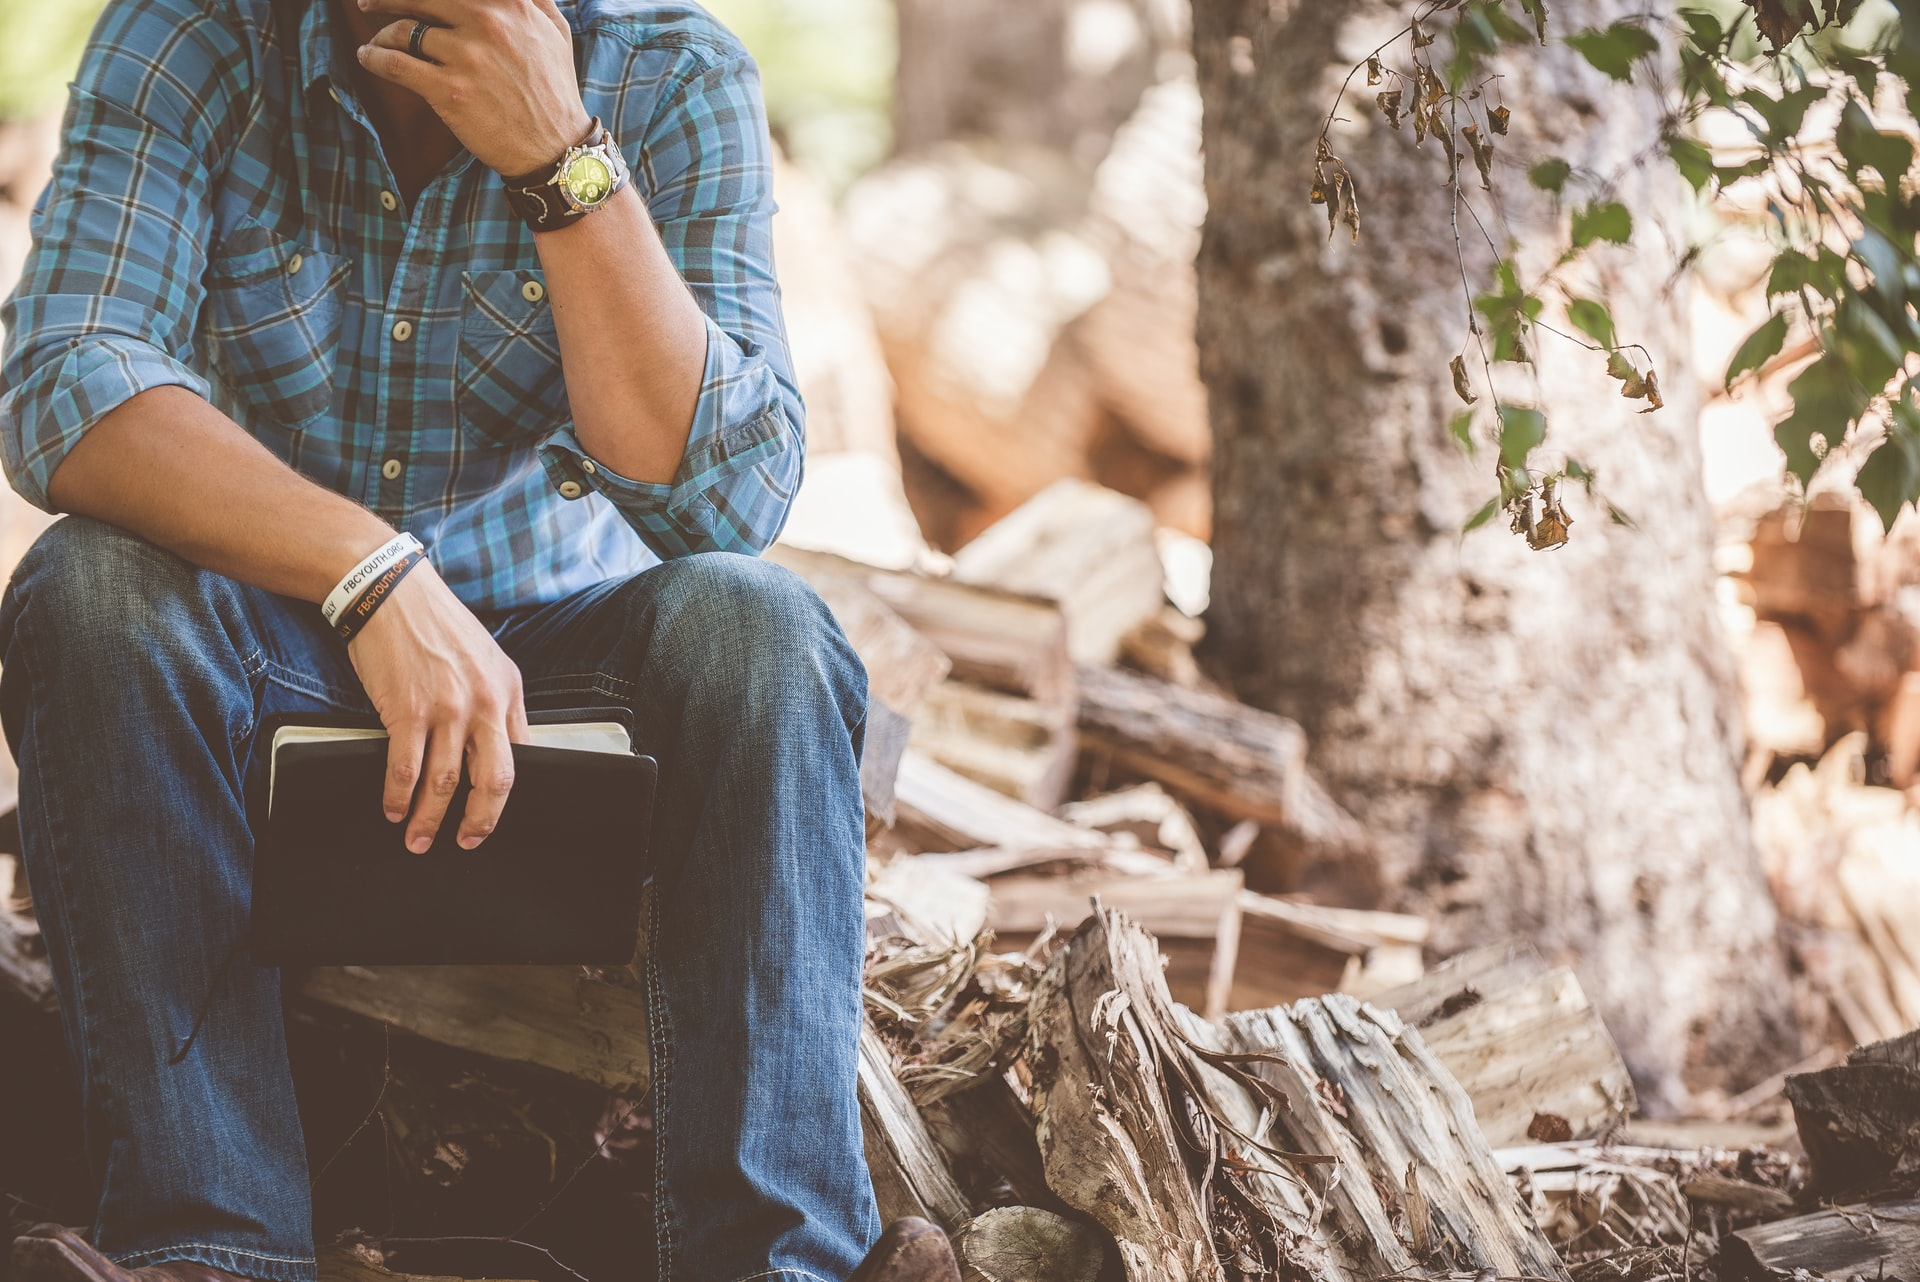 How to prioritize Christ amid chaos, confusion